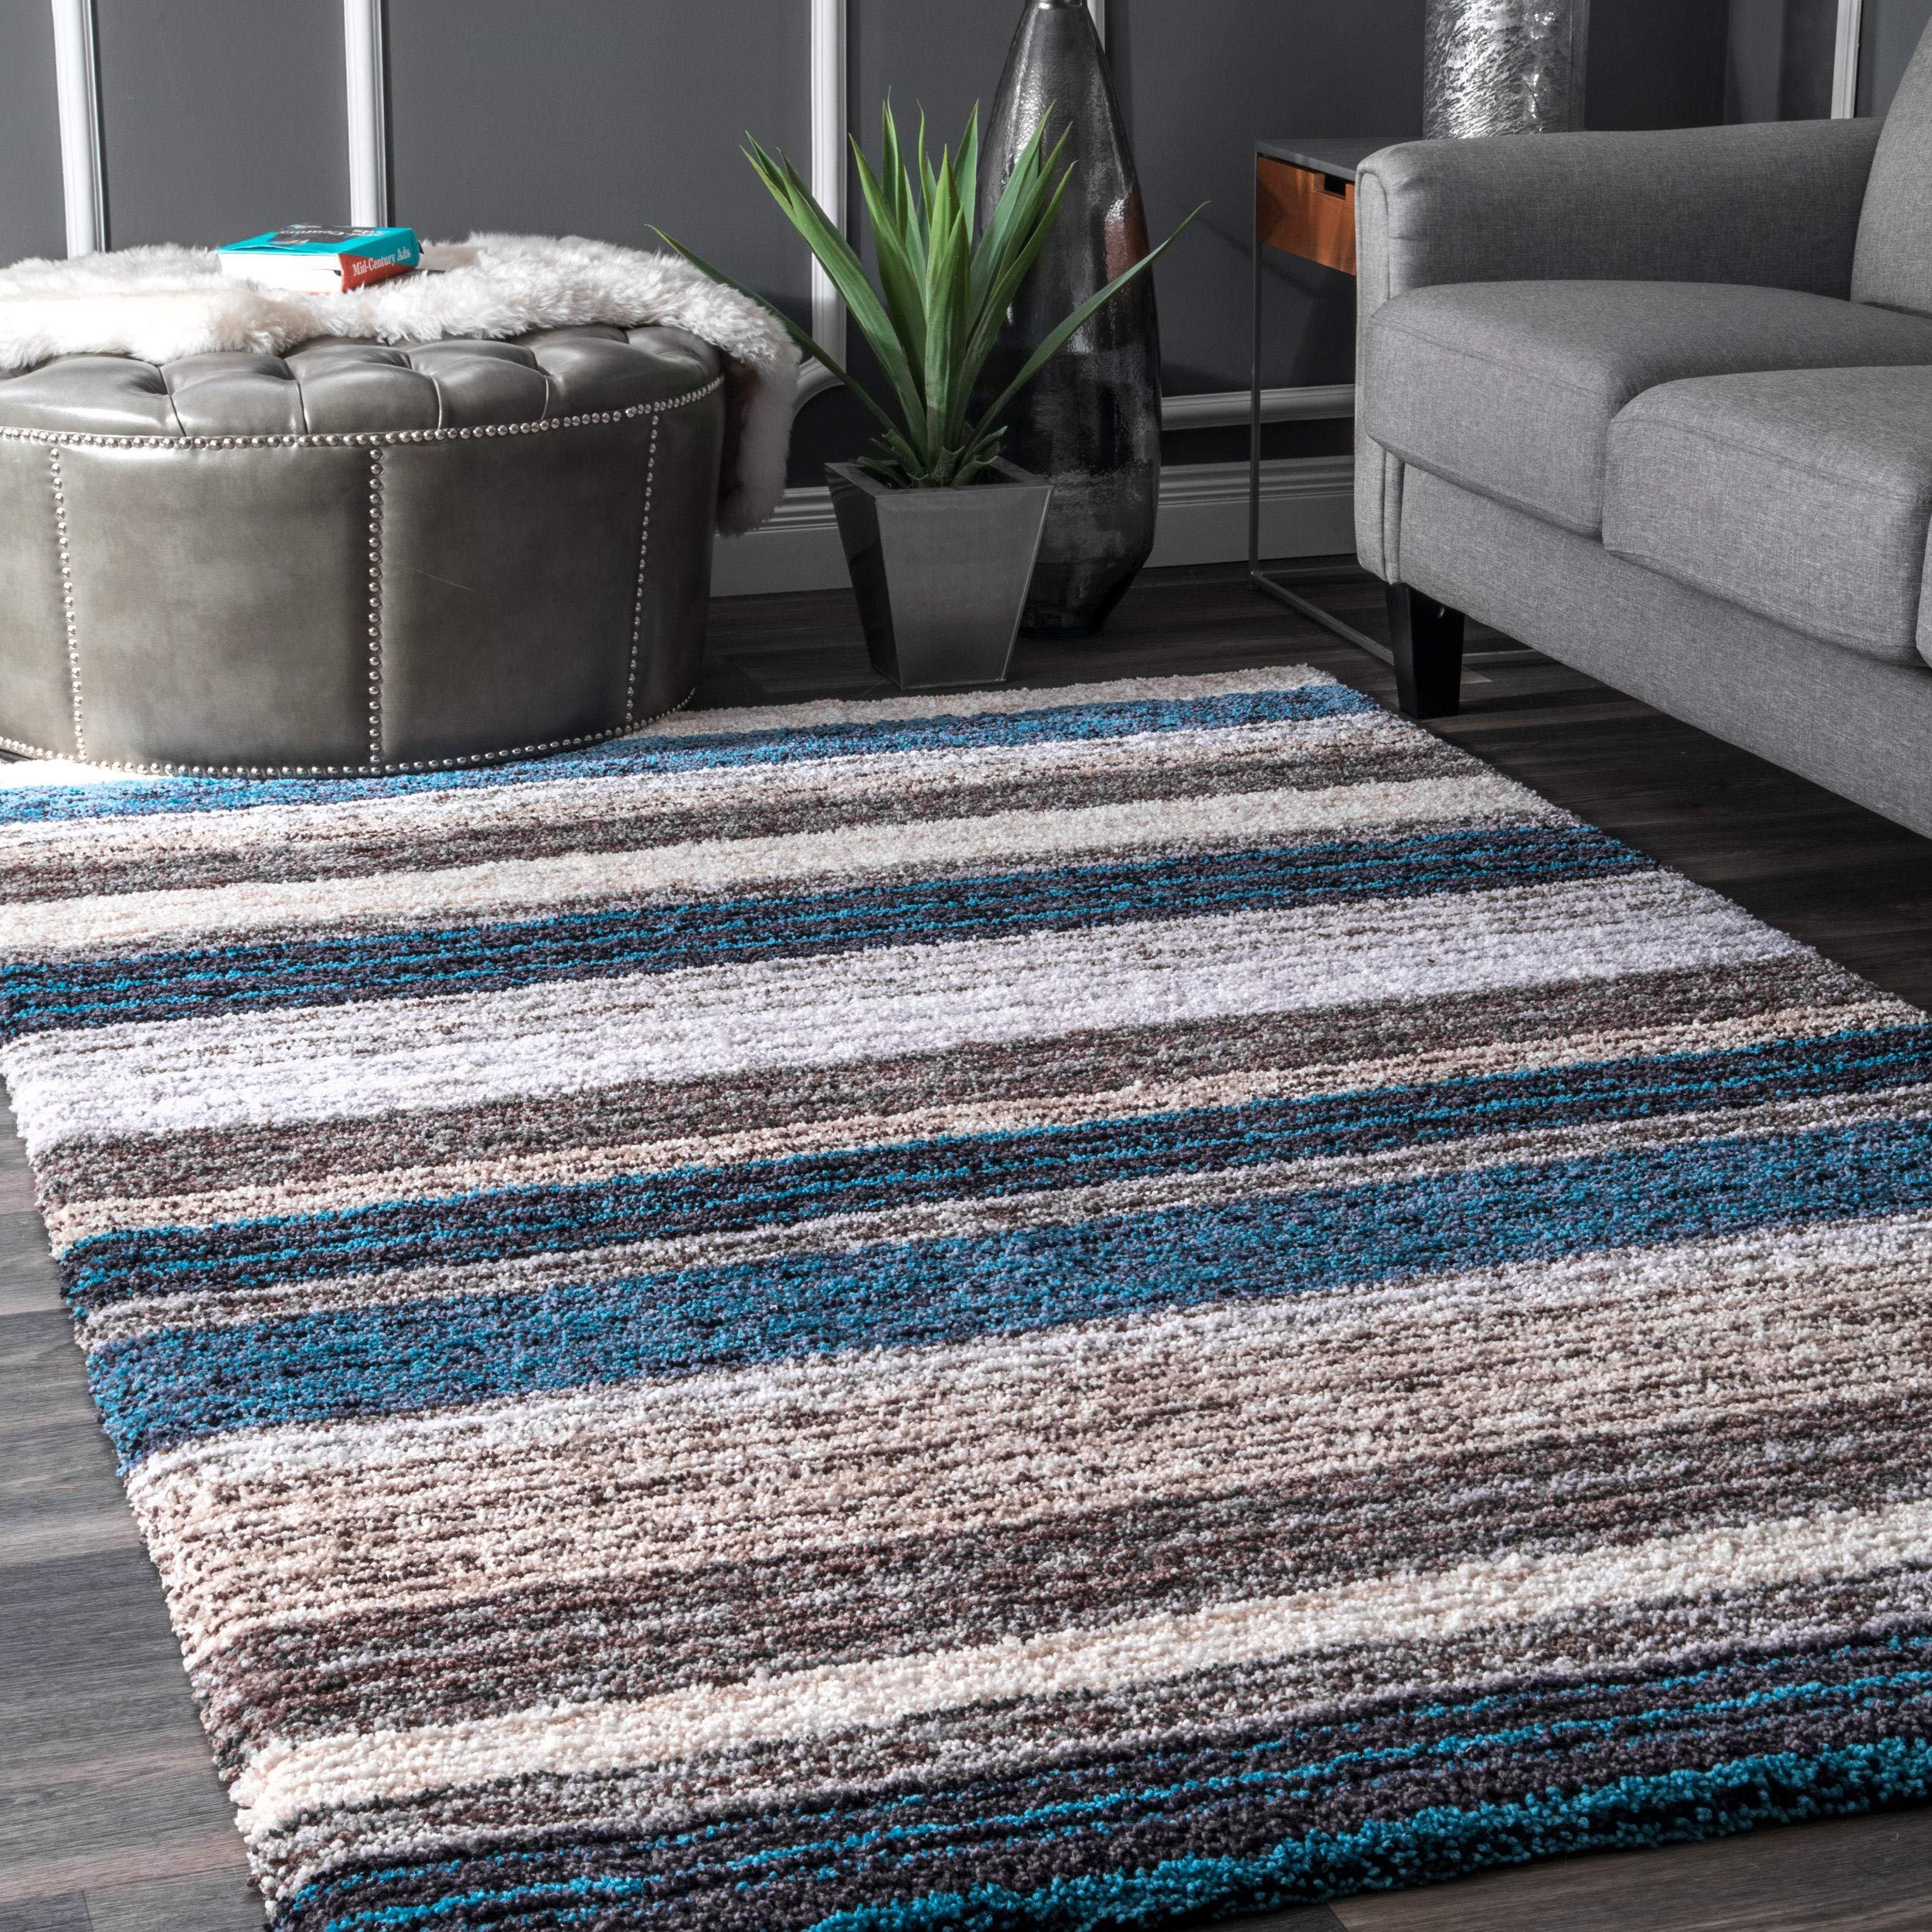 nuLOOM HJZOM1B Classie Hand Tufted Shag Rug, 5' x 8', Blue Multi, Rectangle product image